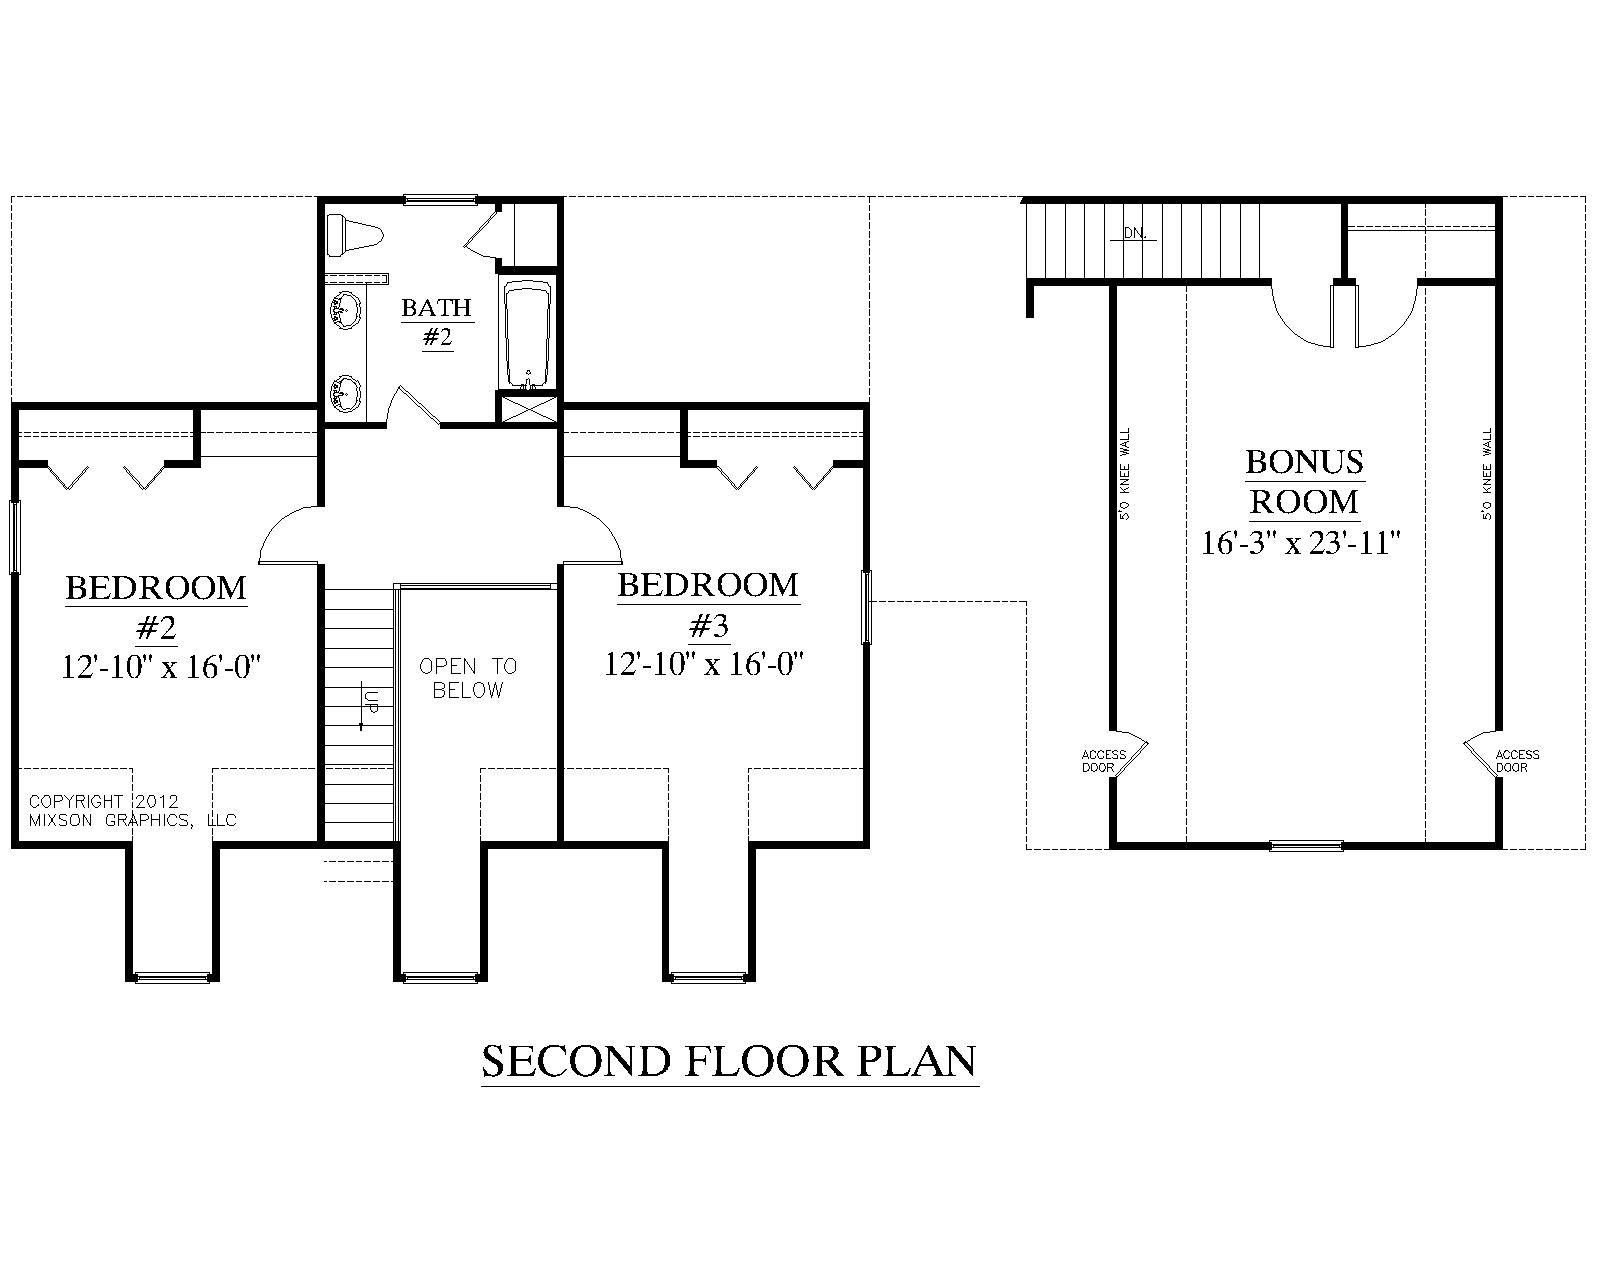 House plan 2091 b mayfield b second floor plan for 2nd story floor plans